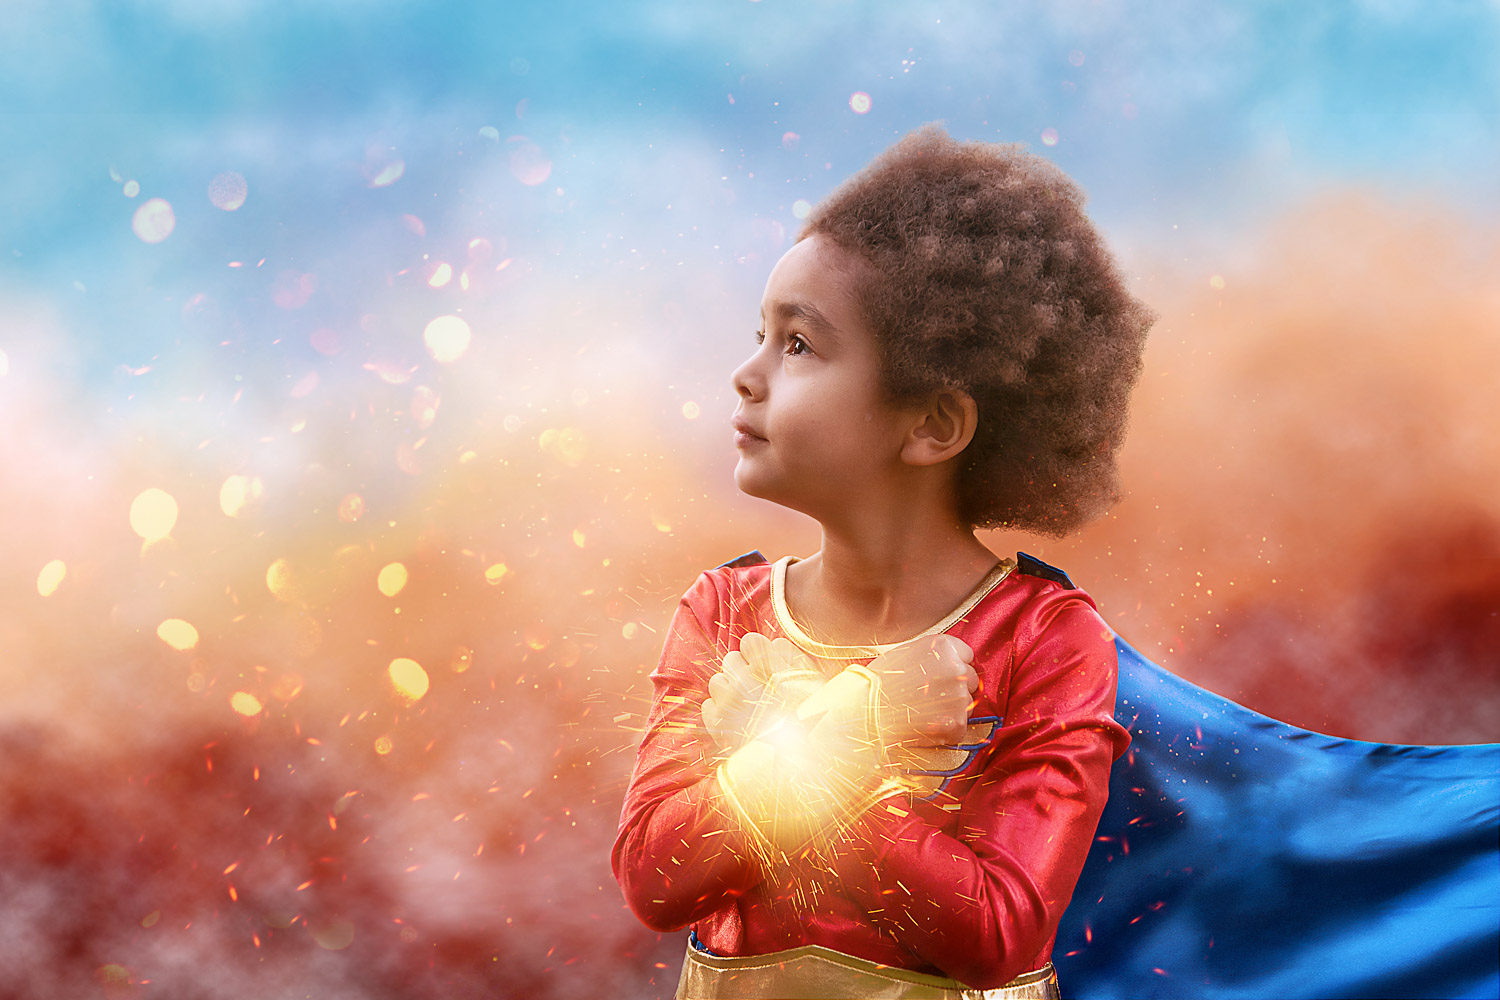 little girl as wonder woman closeup storybook composite